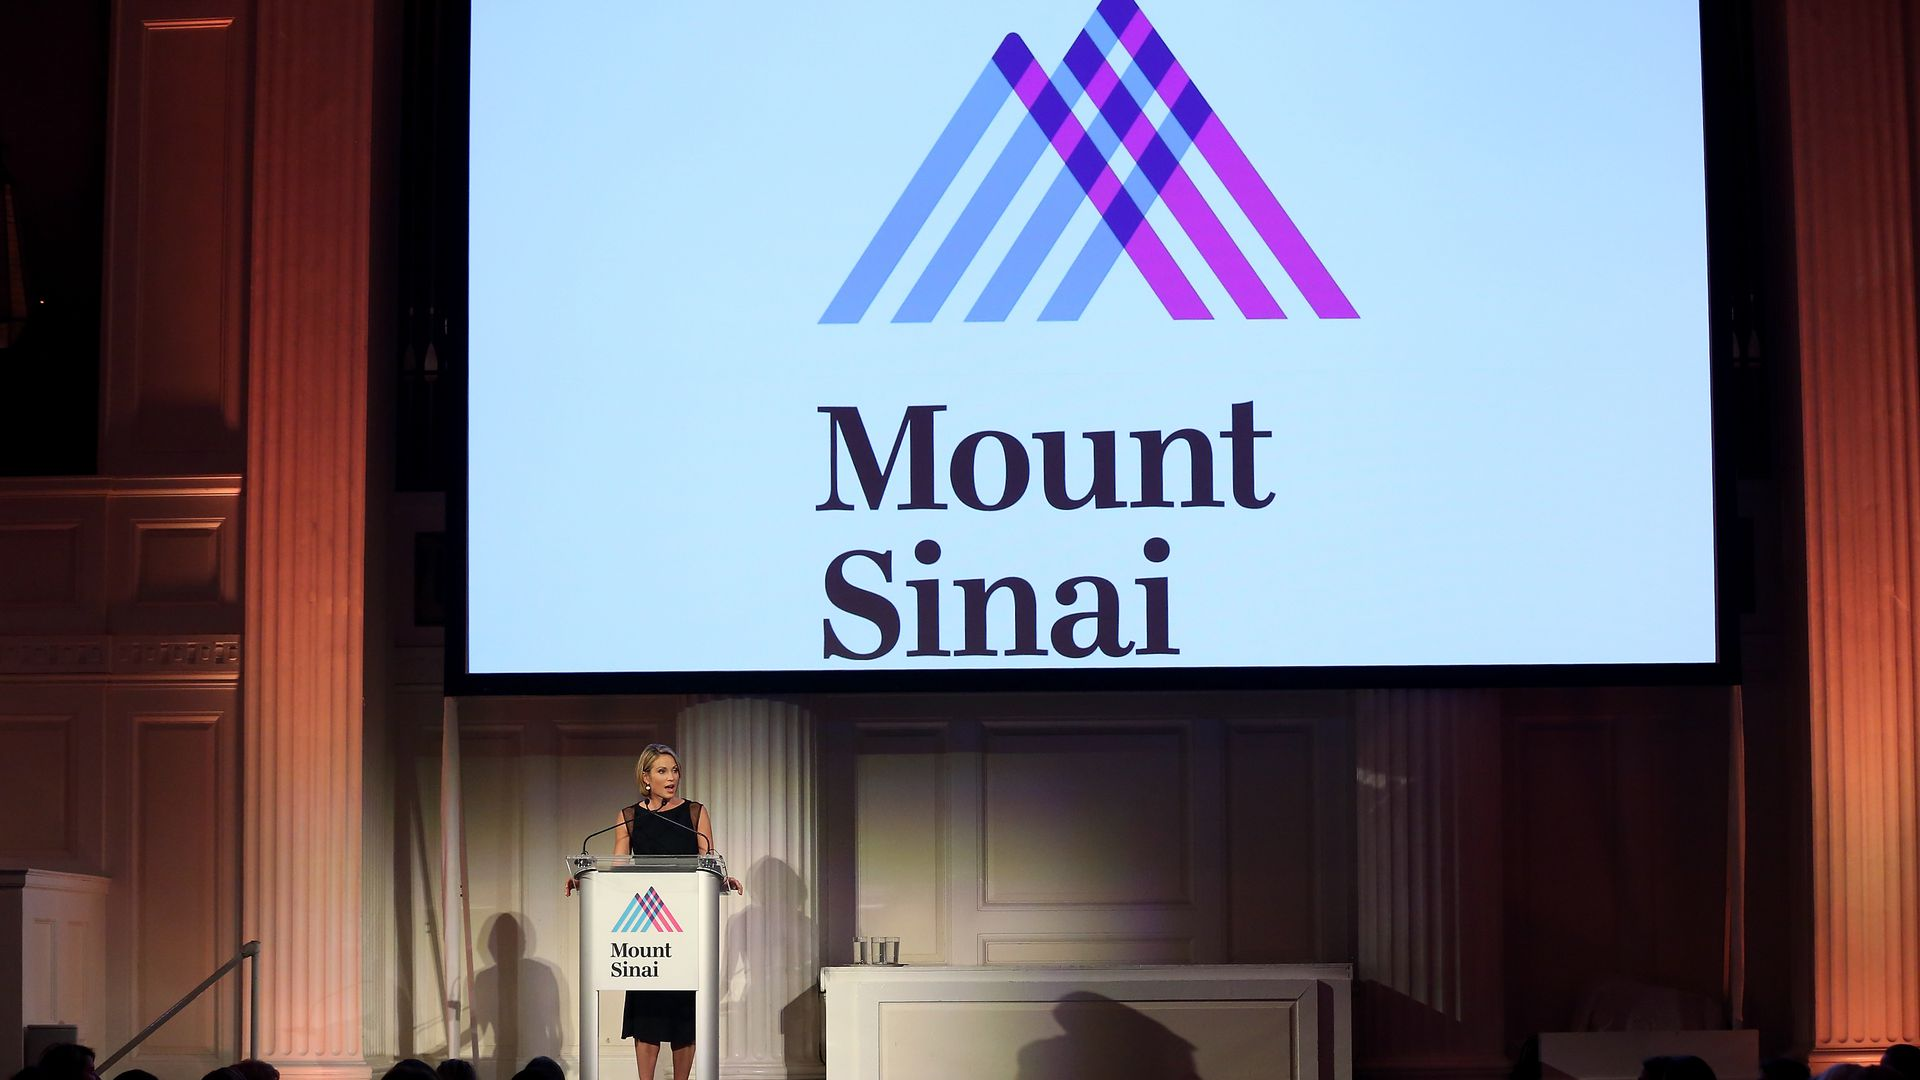 A woman speaks near a large white screen that displays the blue and pink logo for Mount Sinai Health System.